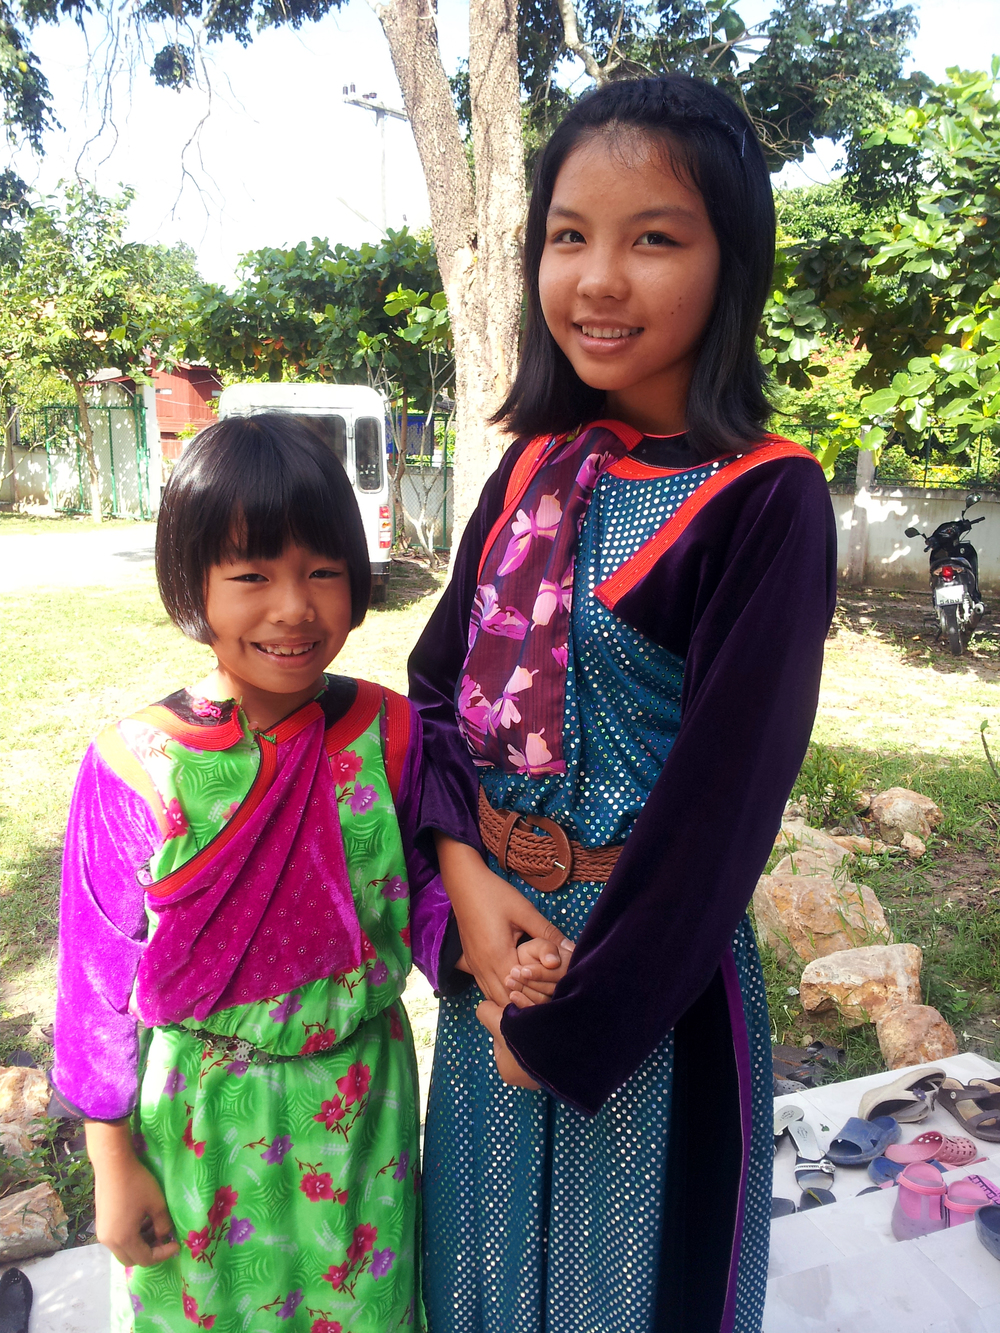 Two of our Lisu tribe girls proudly wear their traditional clothing.